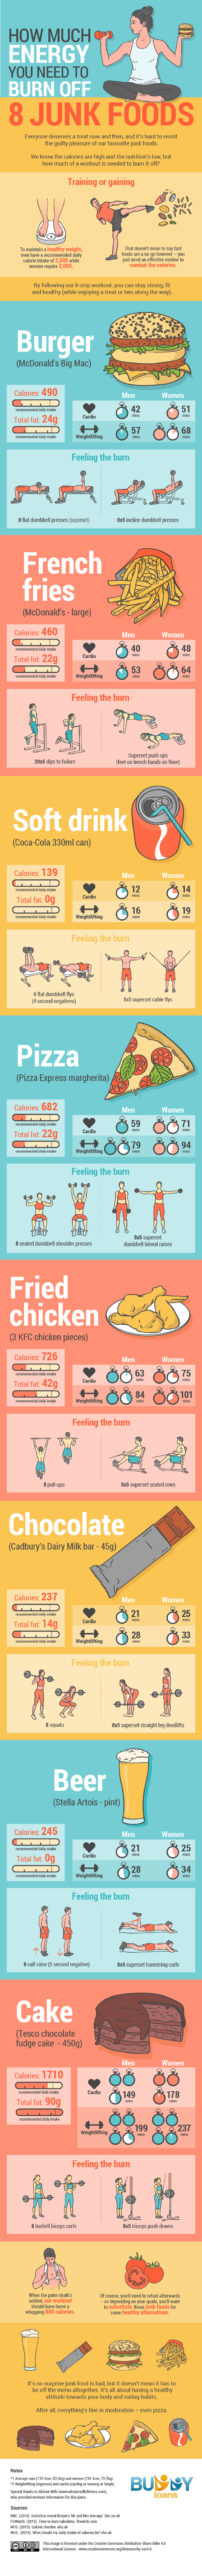 Junk food and exercise infographic